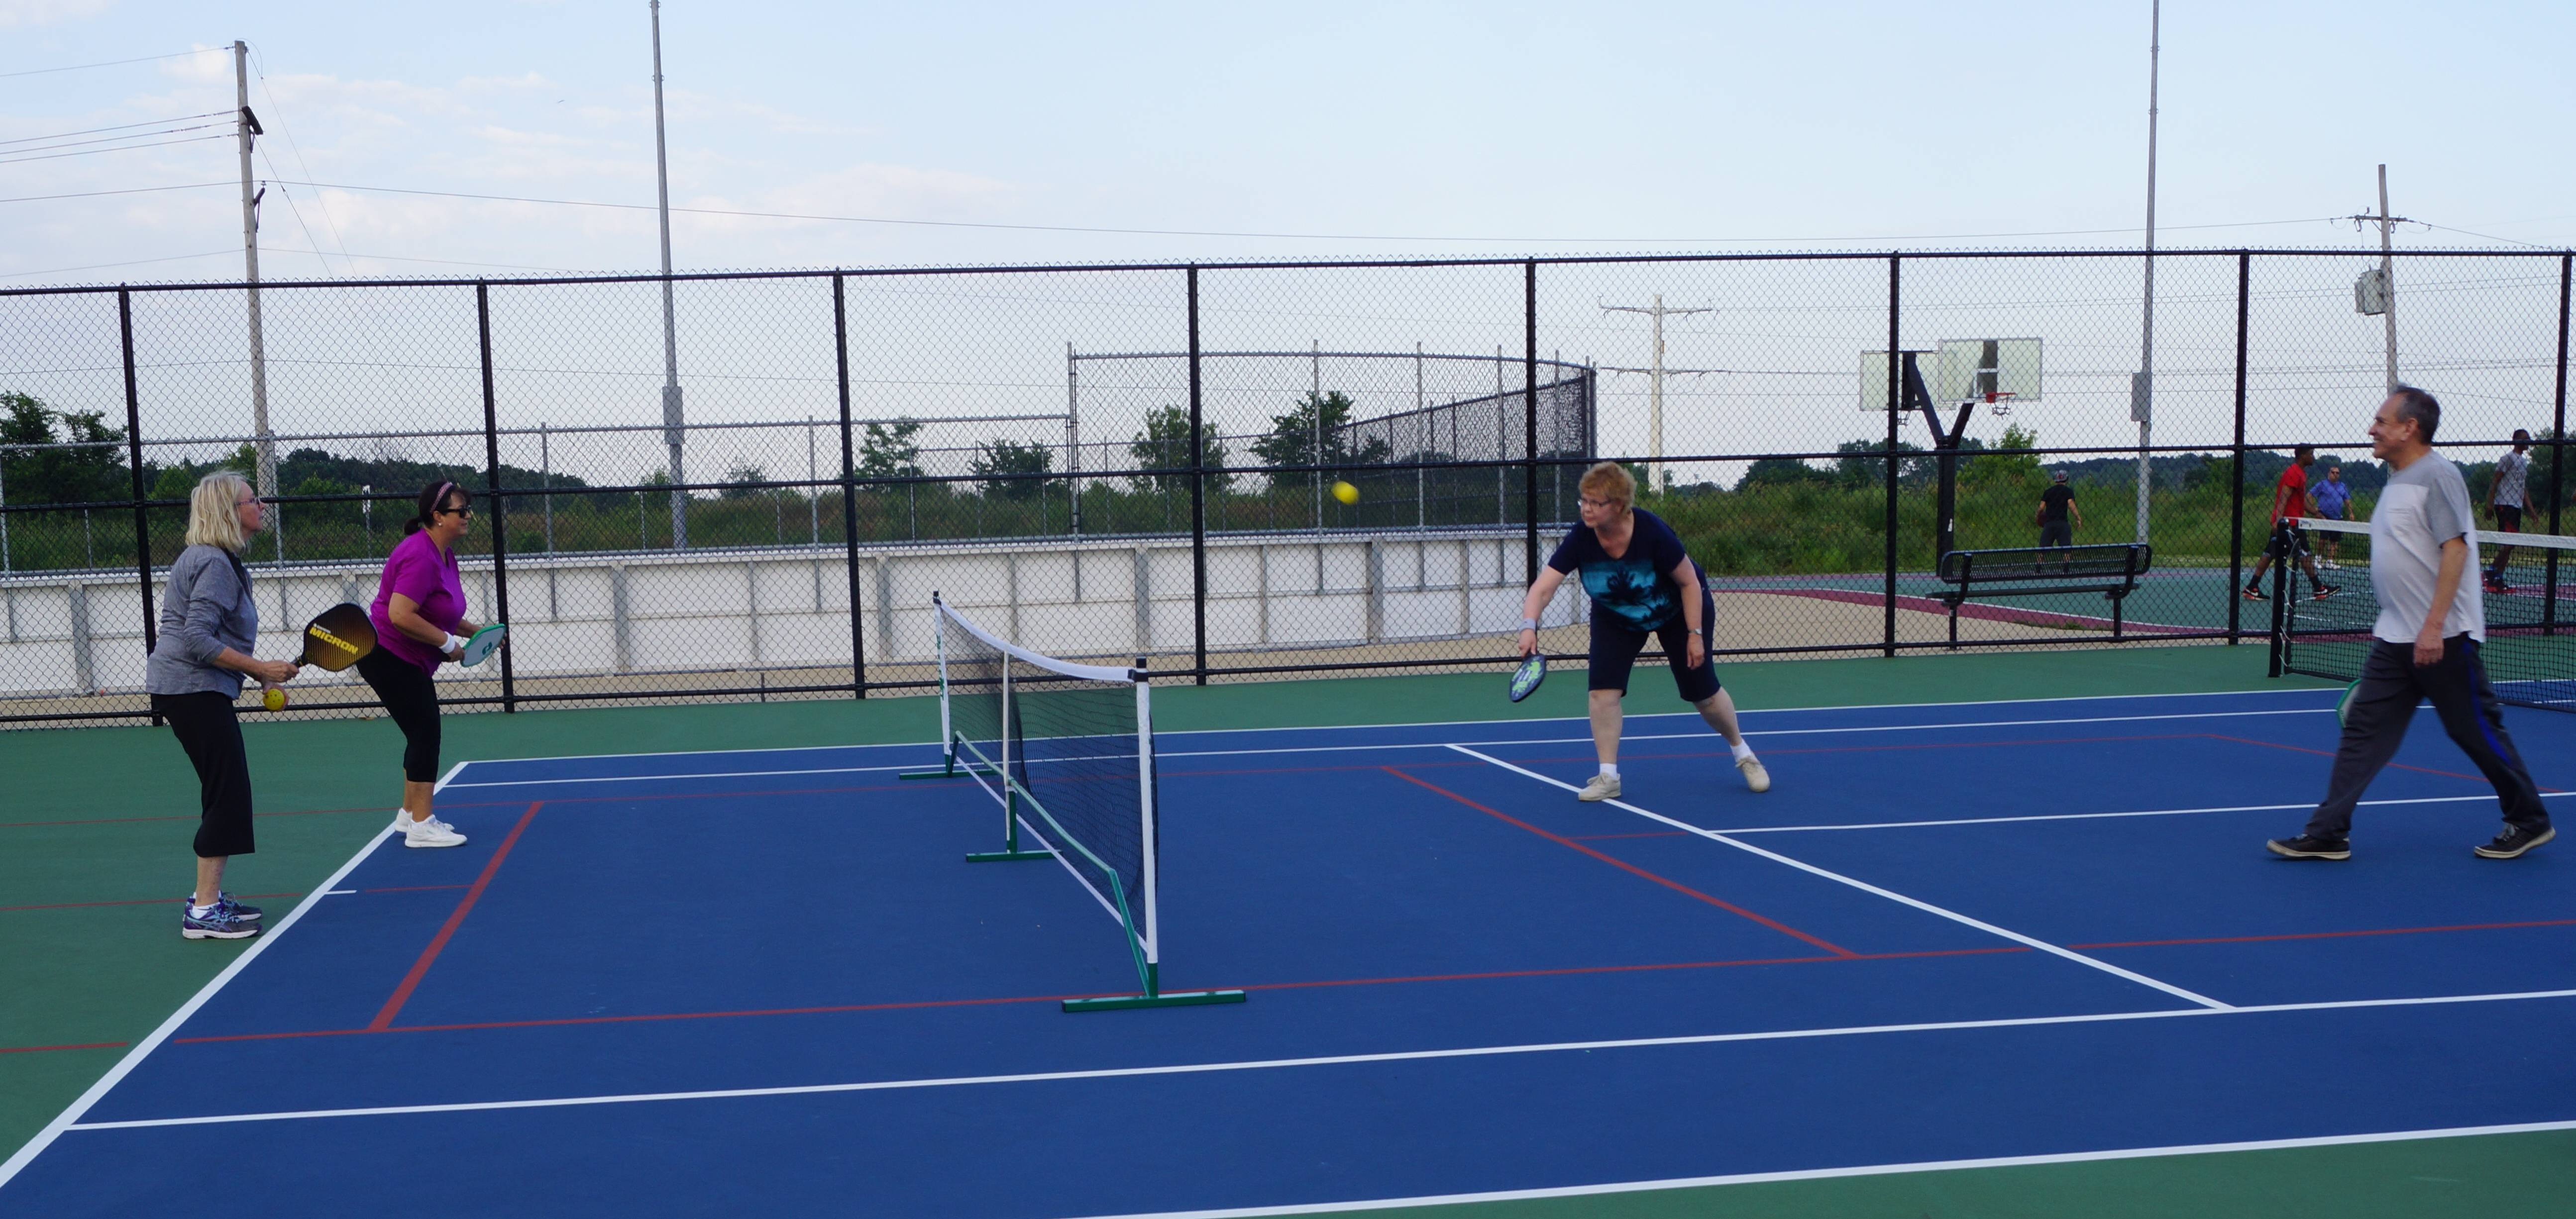 Opening celebration for Pickleball Courts at Nike Sports Complex Sept. 22